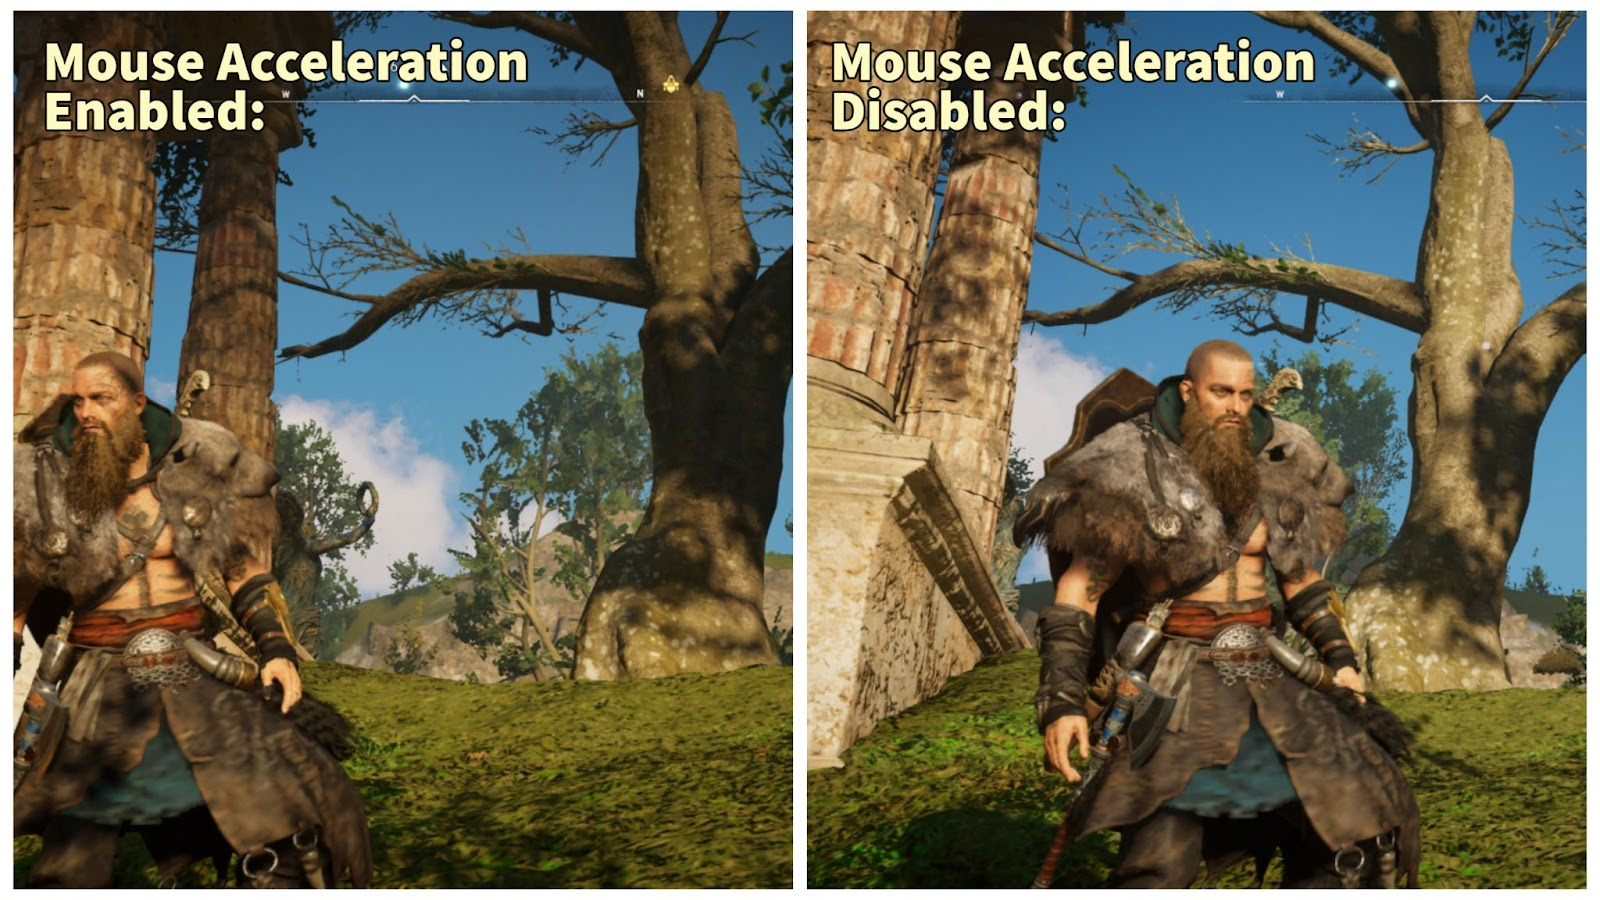 A collage containing two pictures of Eivor from Assassins' Creed Valhalla pictured to be in different distances away from a tree, with the titles Mouse Acceleration Enabled and Disabled, respectively